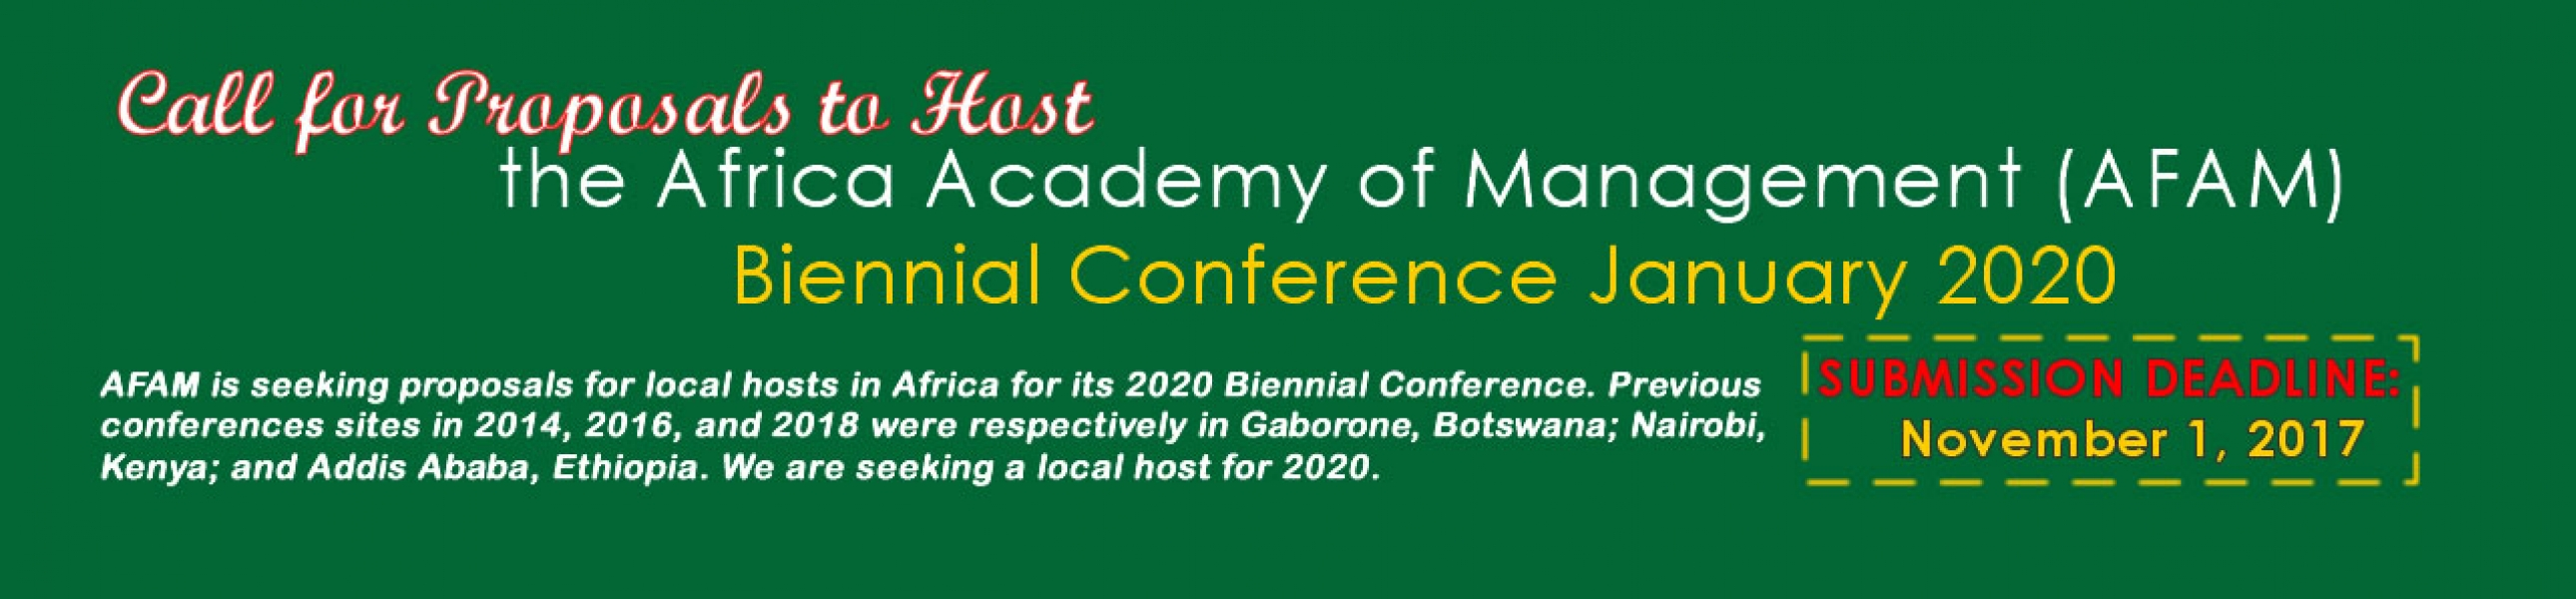 Call for Proposals for AFAM 2020 Conference